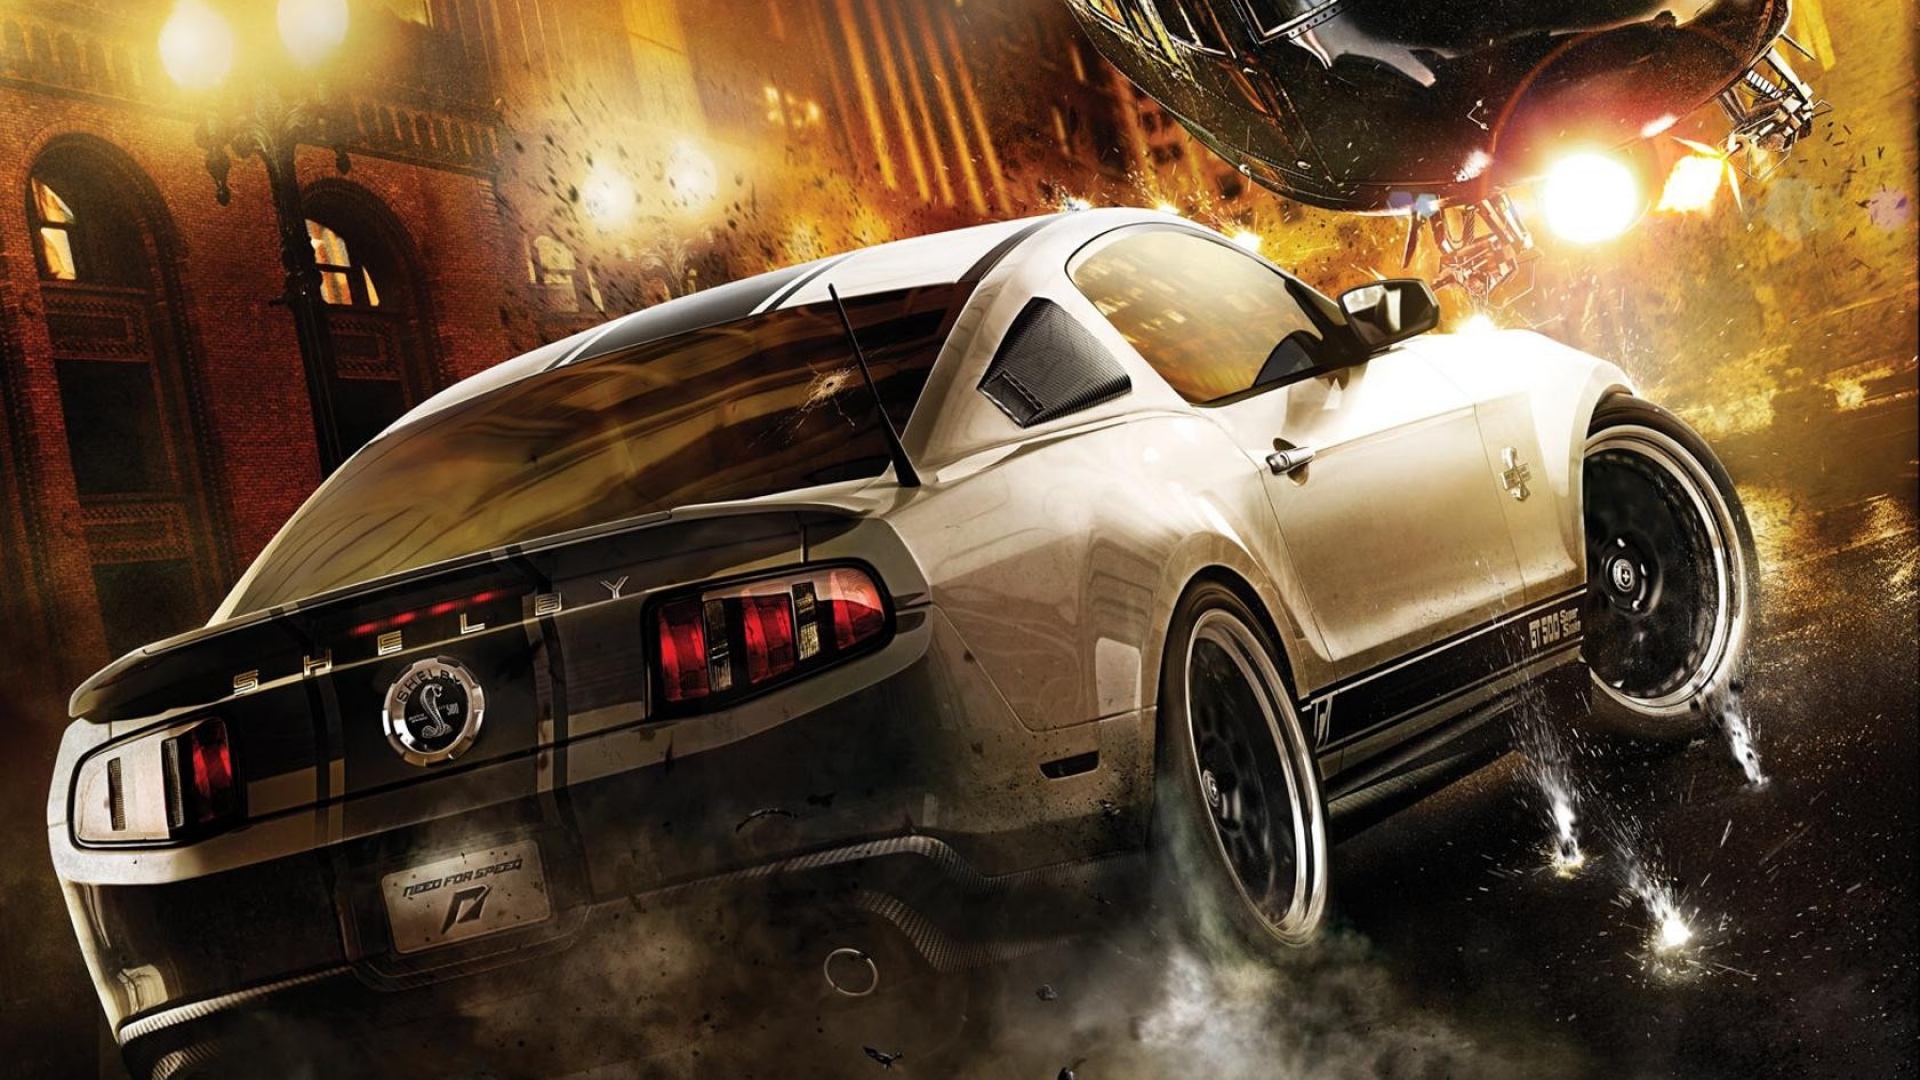 Download Wallpaper 1920x1080 Nfs Need For Speed Shelby Helicopter City Full HD 1080p Background